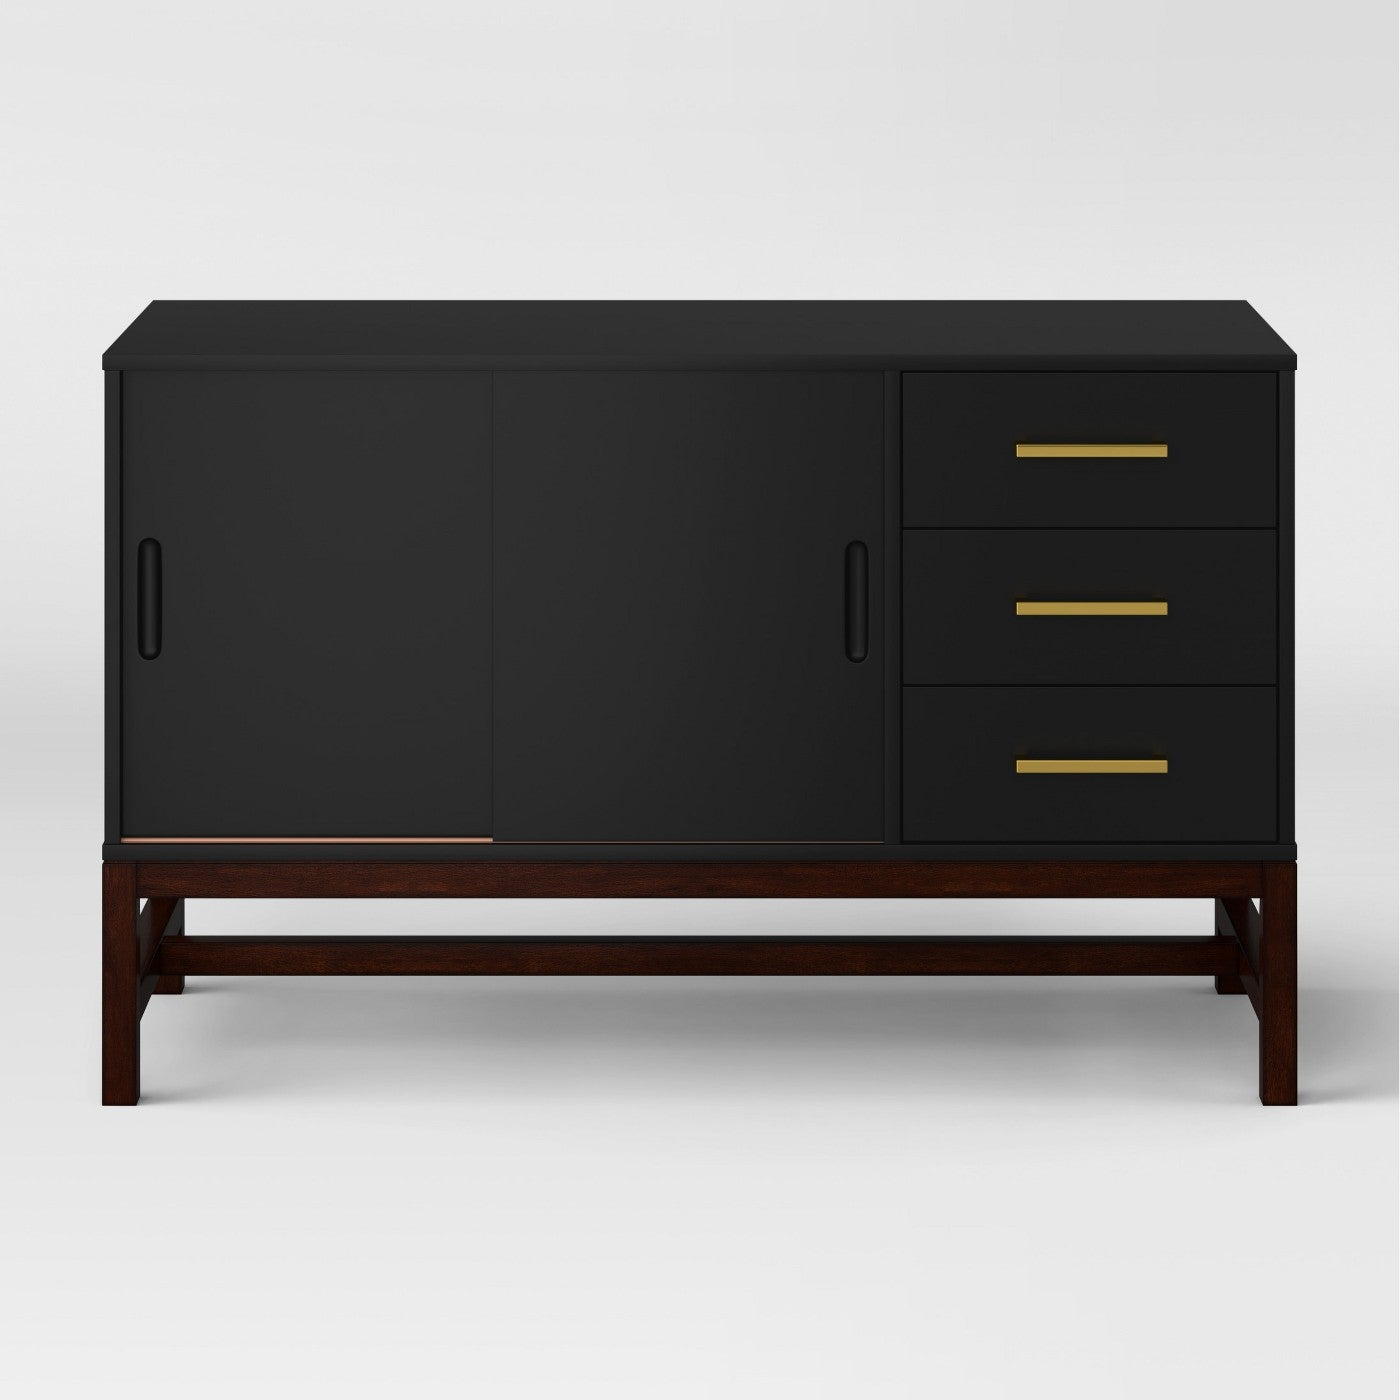 Best Deal Home Furniture: Best Furniture And Home Decor Deals